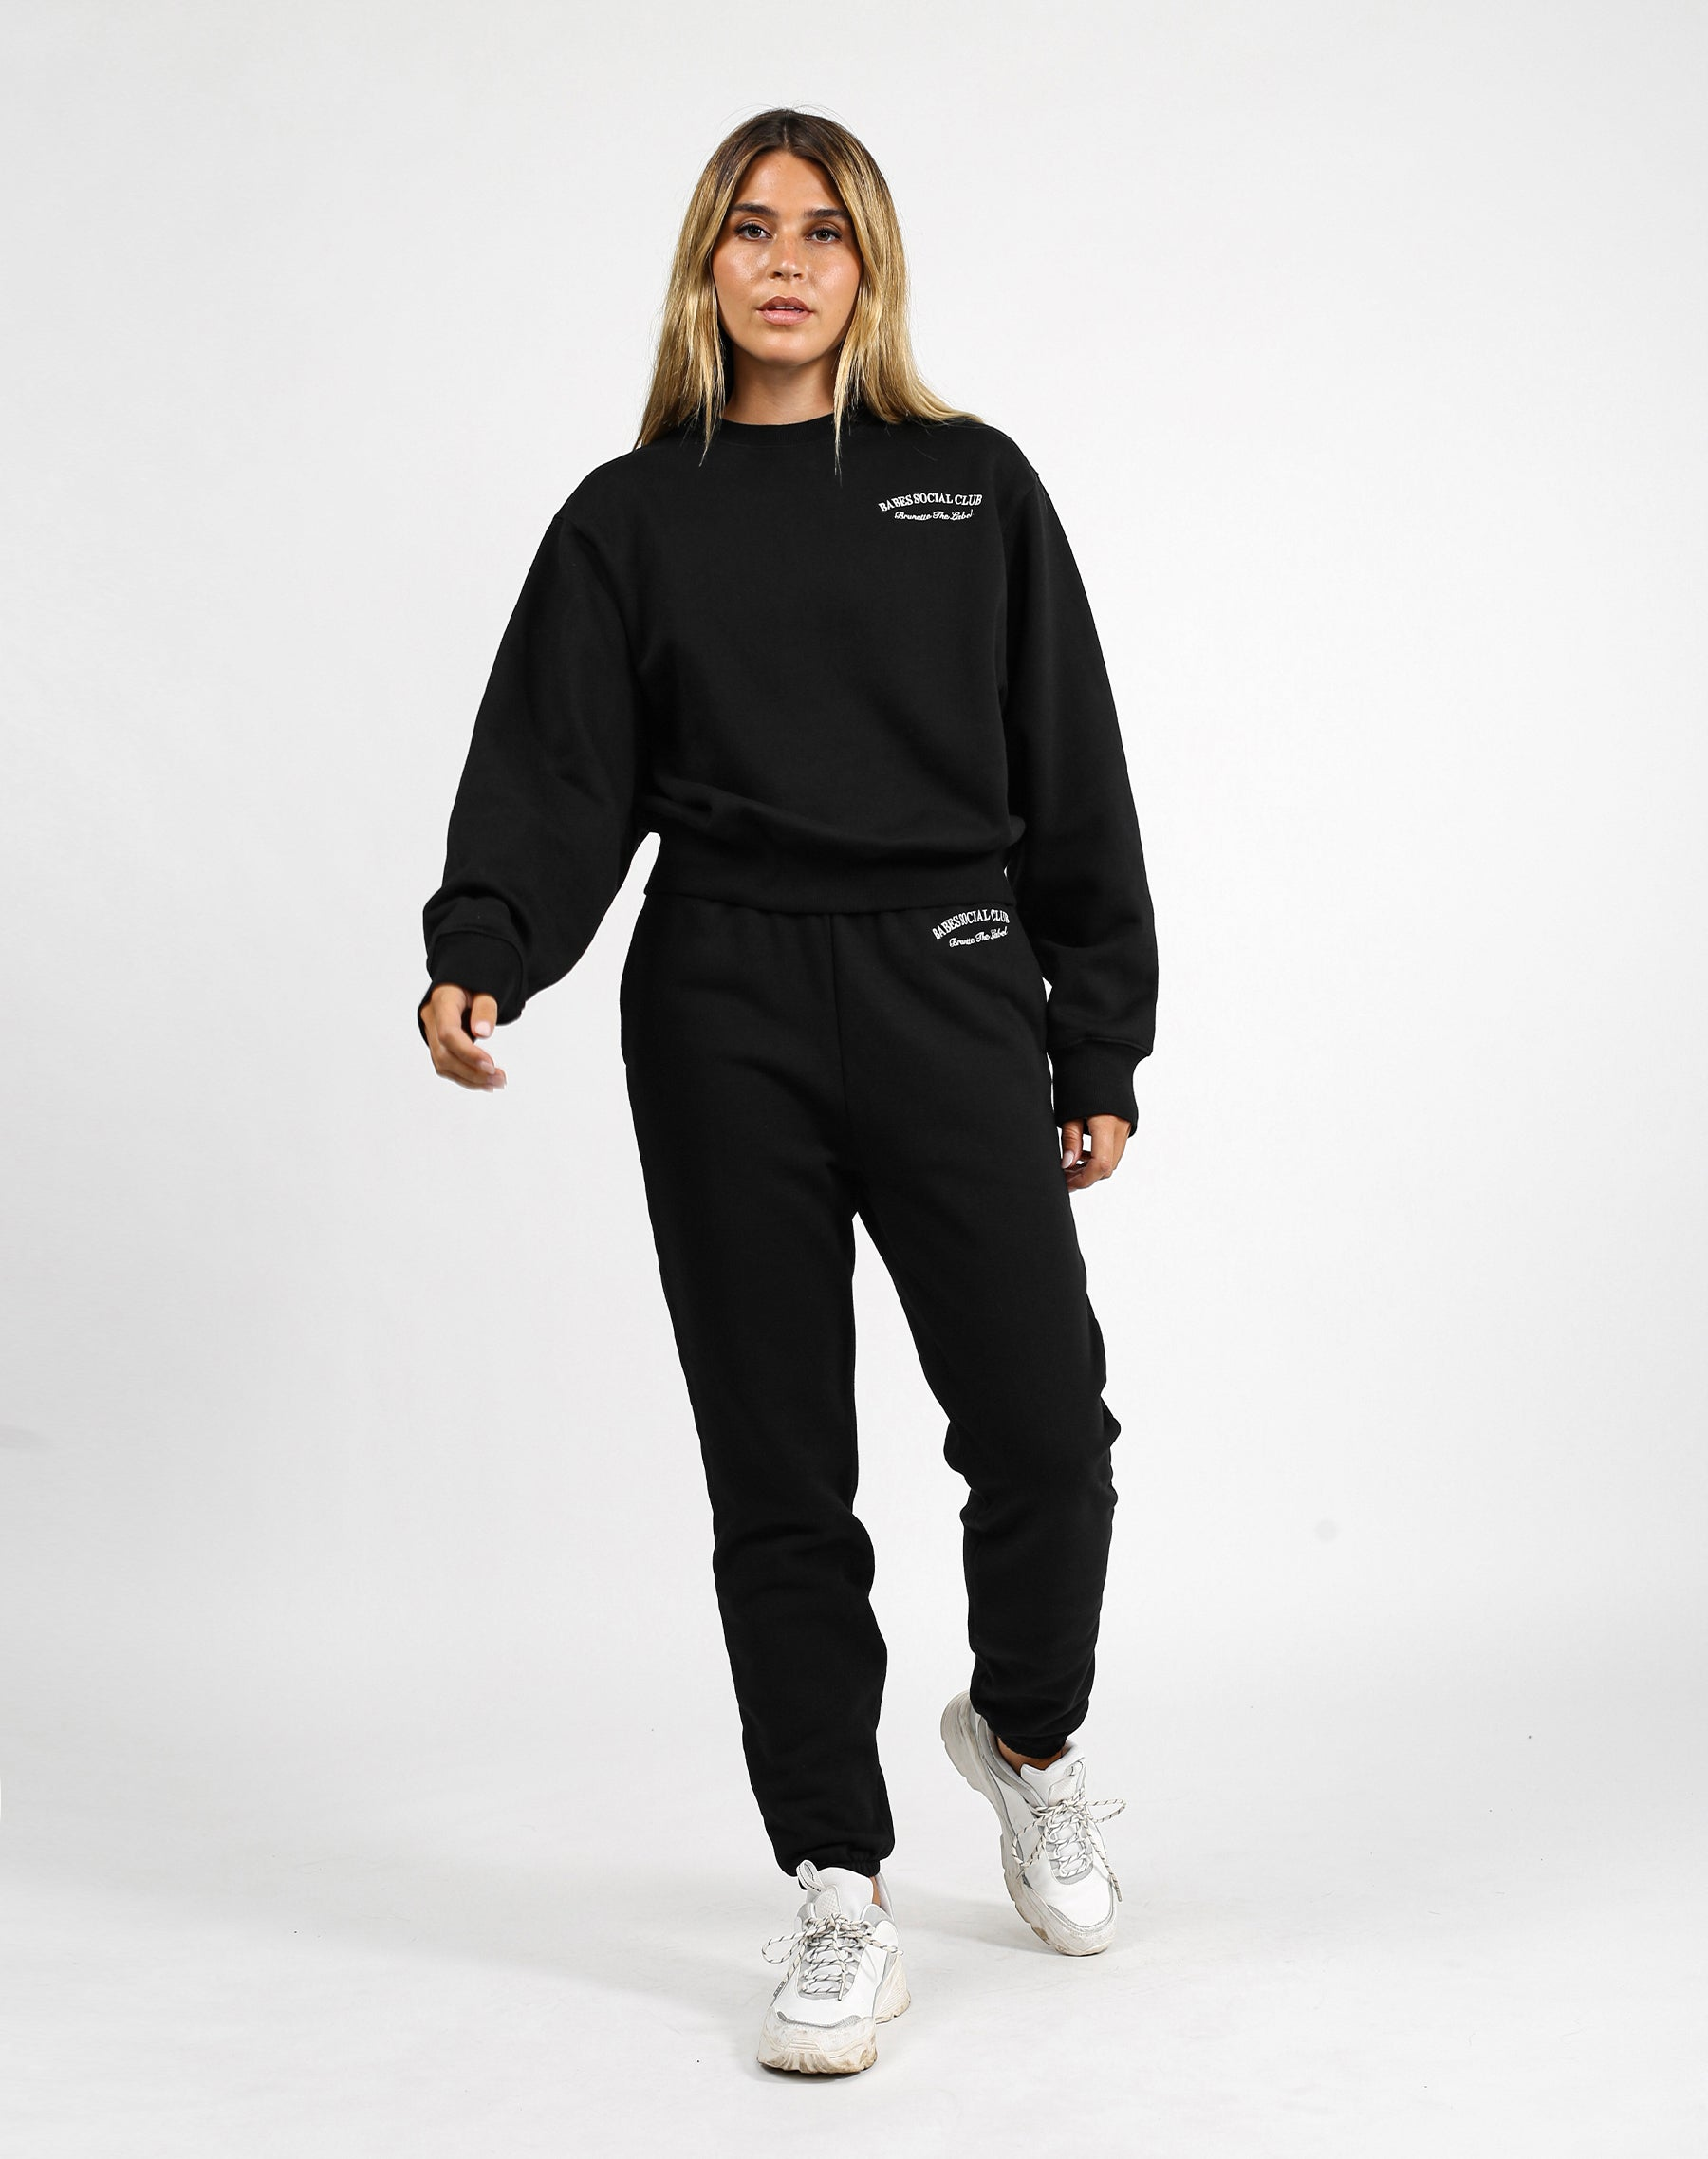 This is an image of the Babes Social Club Best Friend  Sweatsuit in Black by Brunette the Label.